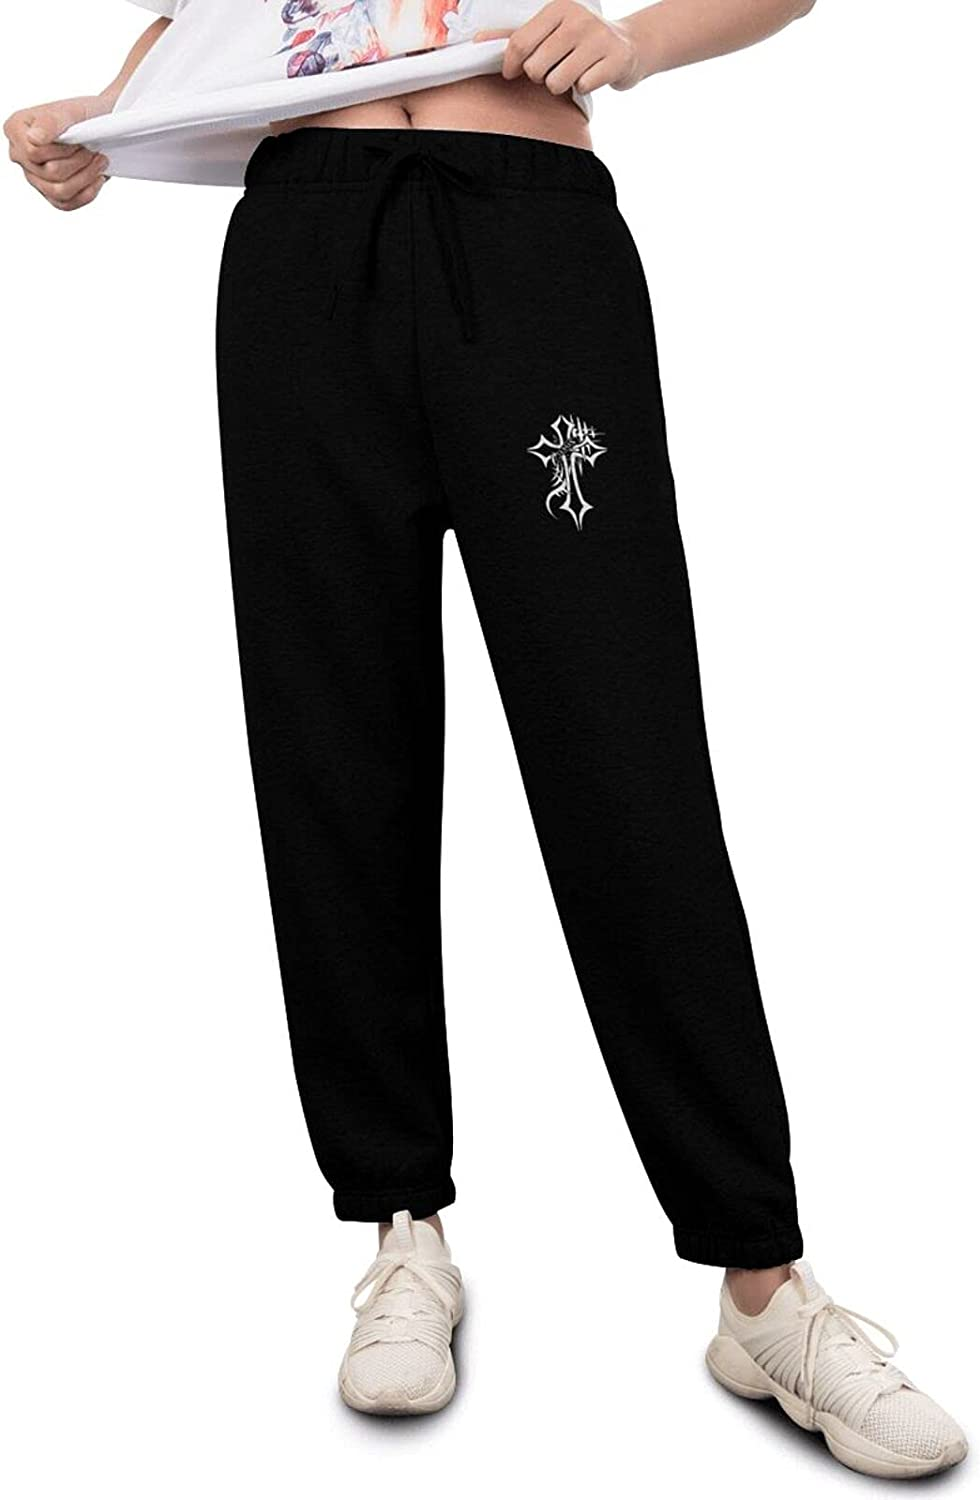 Jesus Christian Cross Women's Track Factory outlet Fees free Pants Breathable Lightweight